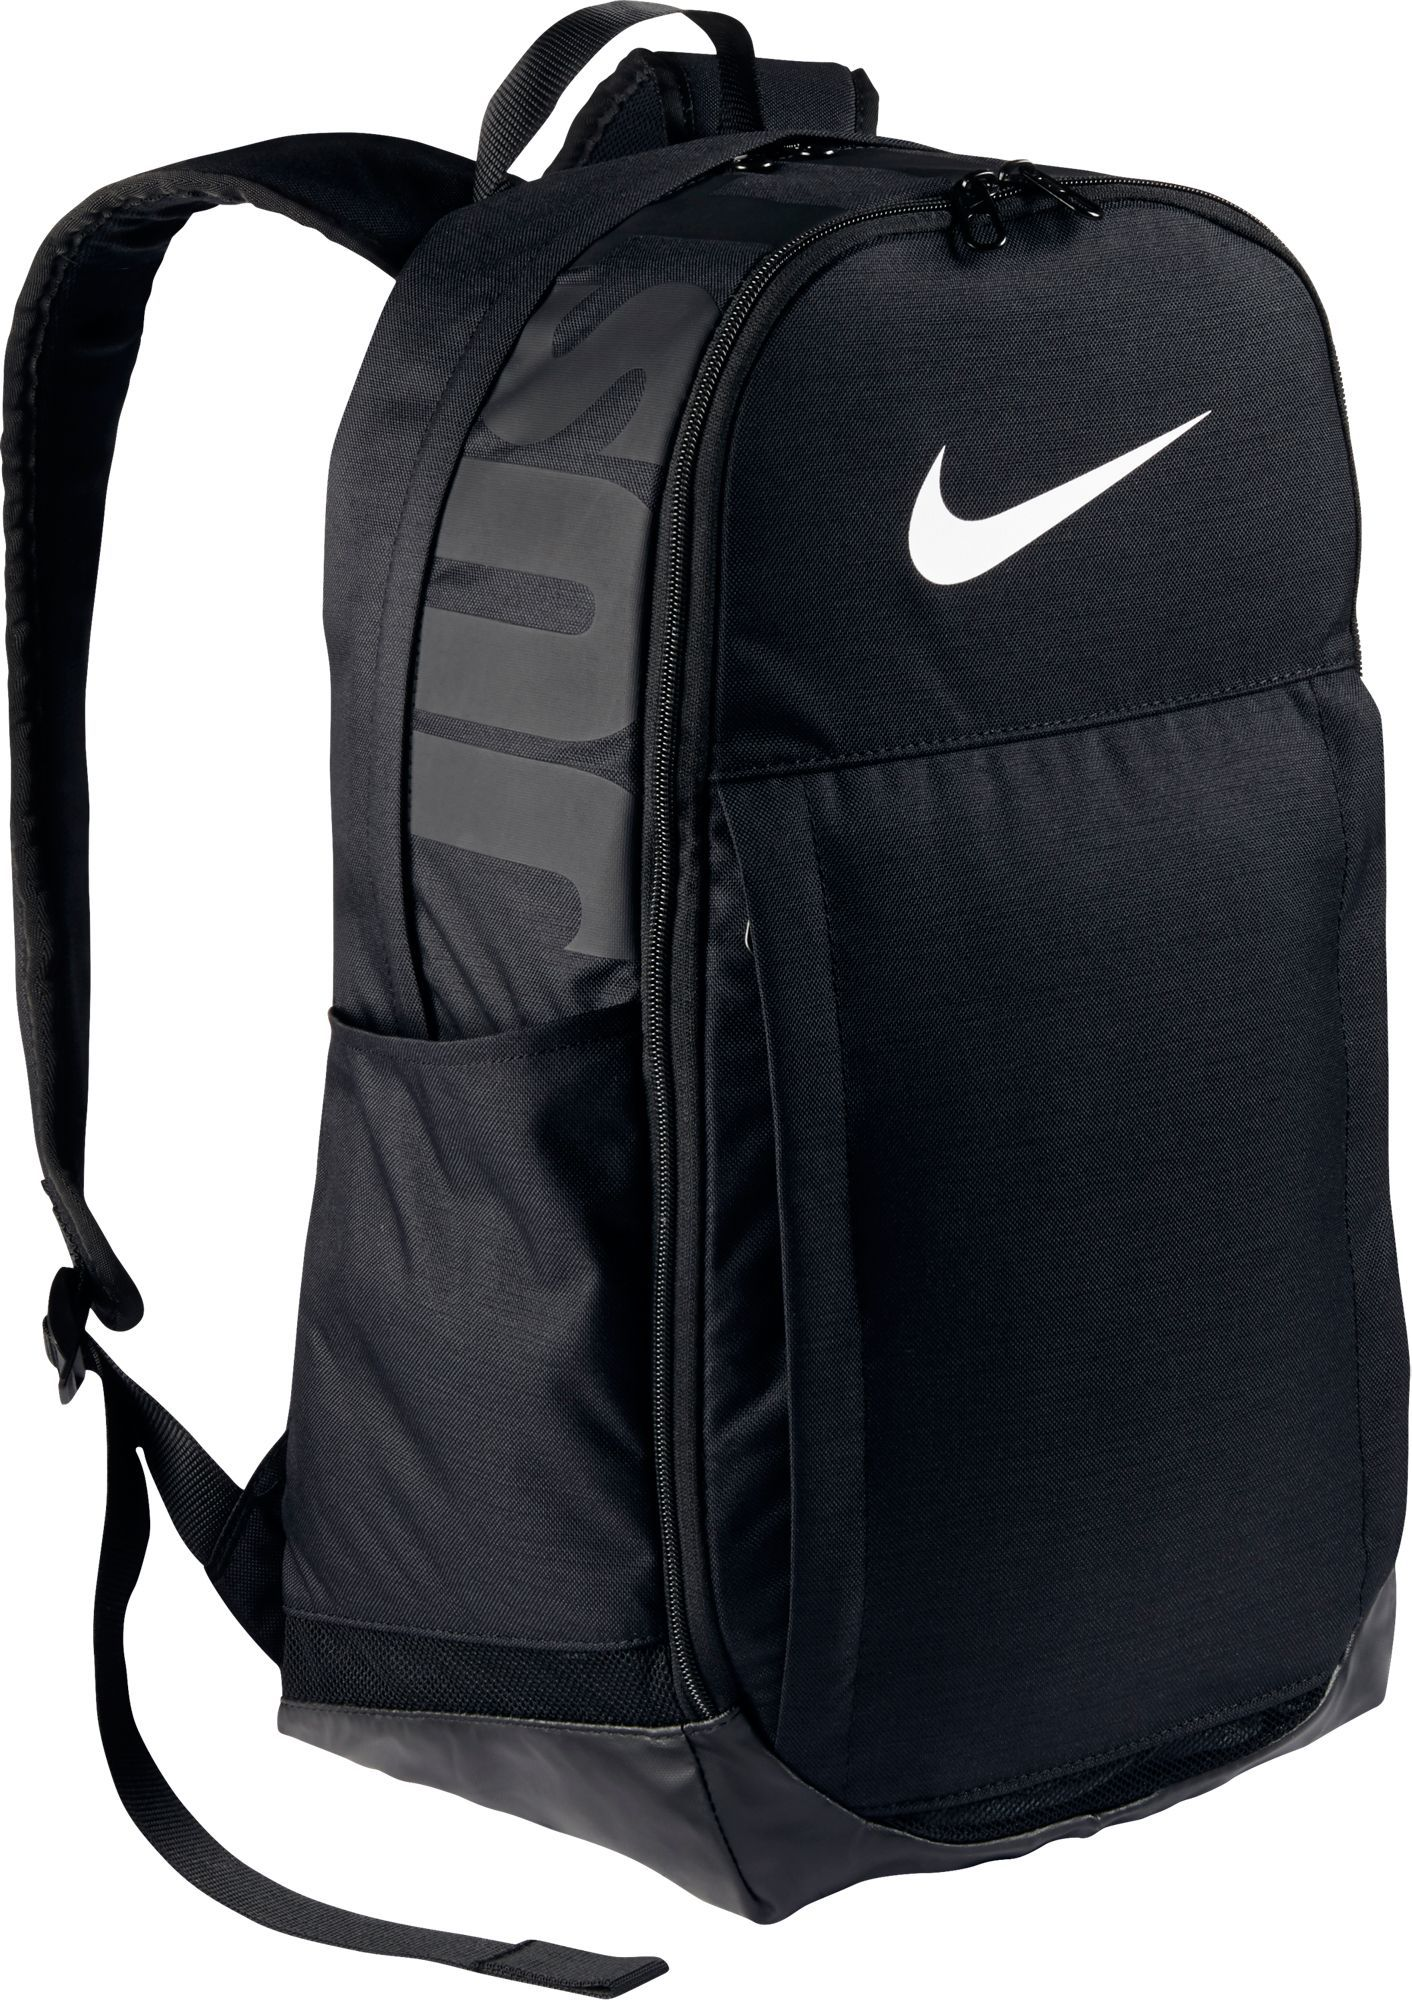 Nike Brasilia XL Training Backpack  4ddc86ae32b30